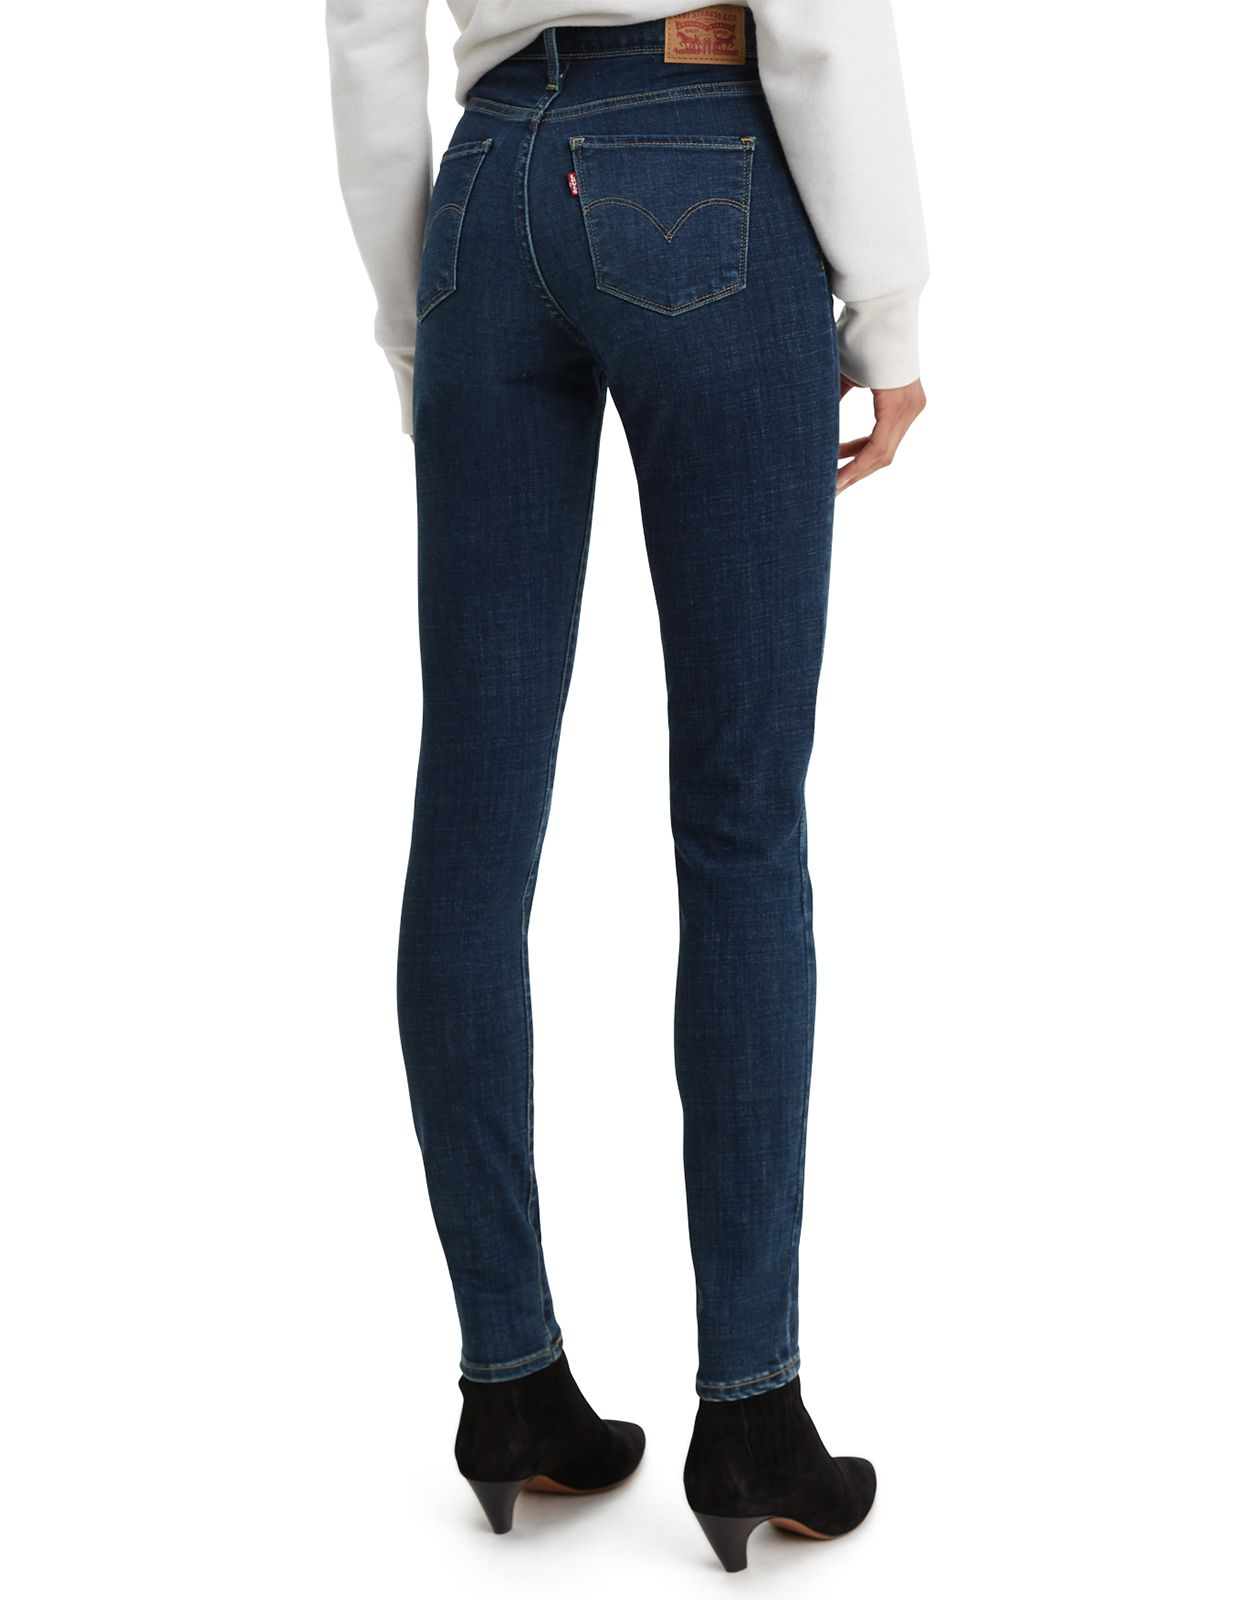 Levi's Women's 311 Shaping Skinny Mid Rise Skinny Jeans - Maui Views